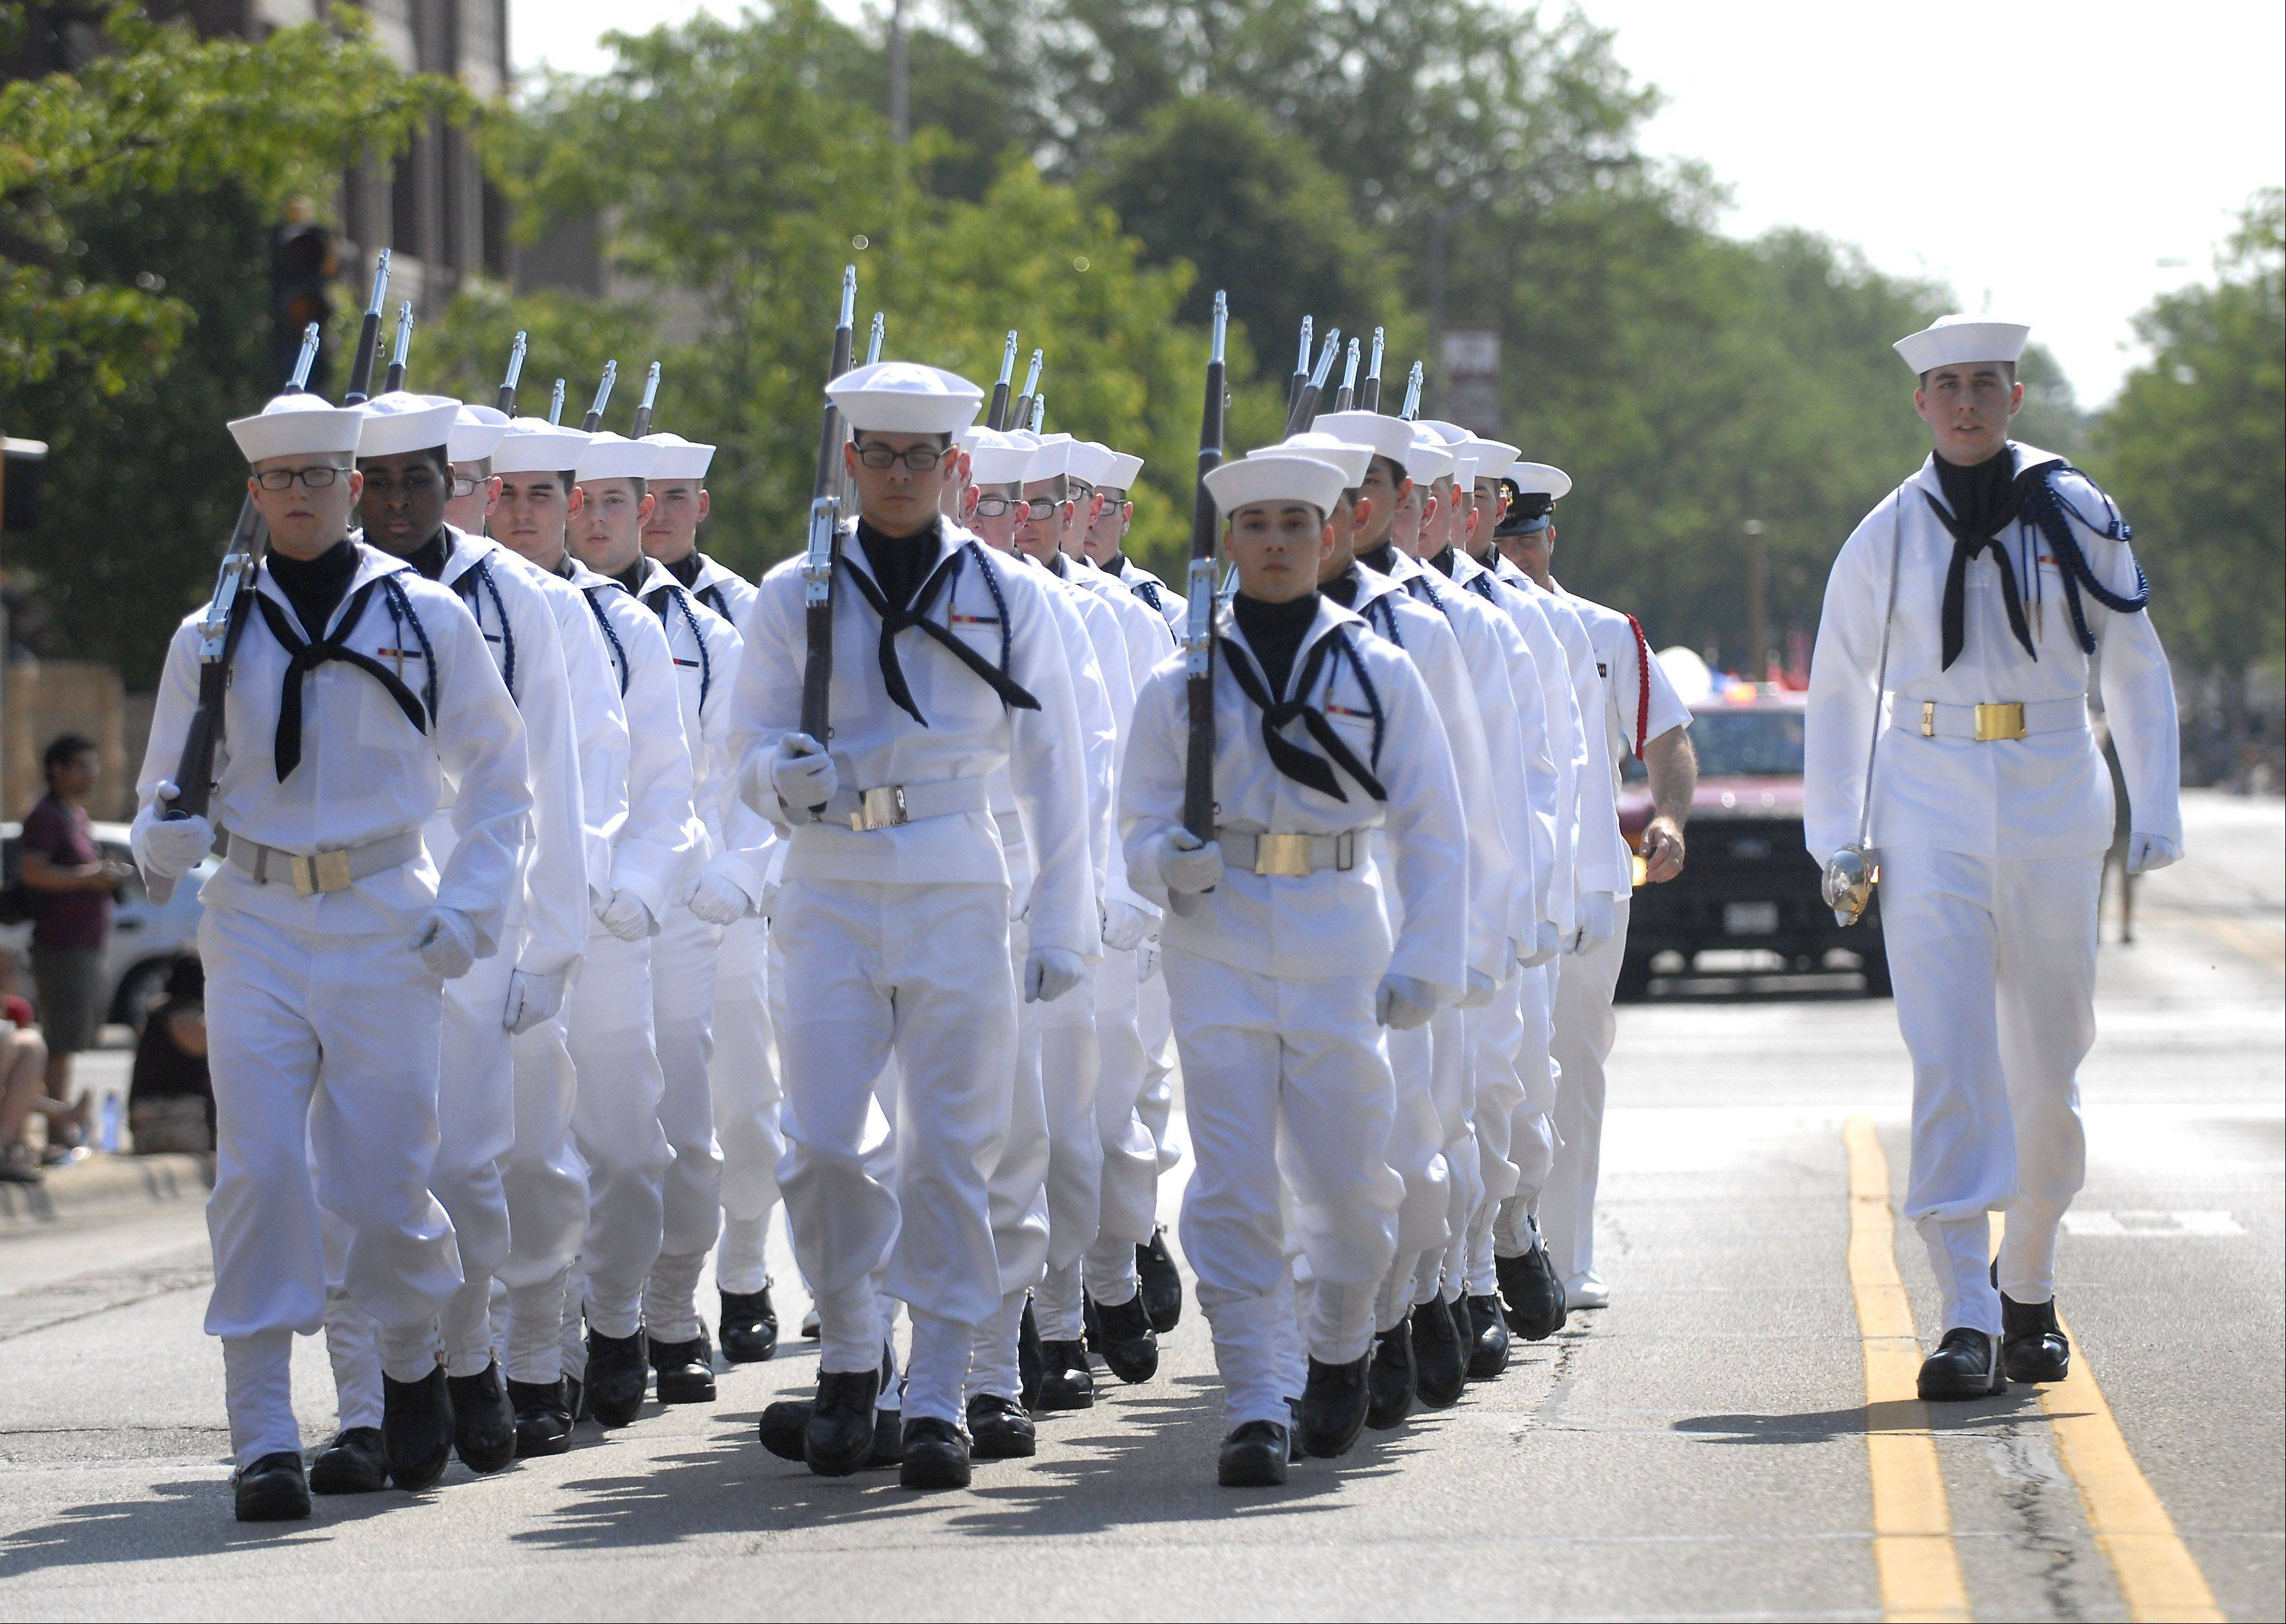 Sailors with the Recruit Training command from Great Lakes march in the Memorial Day parade in Monday in Arlington Heights.